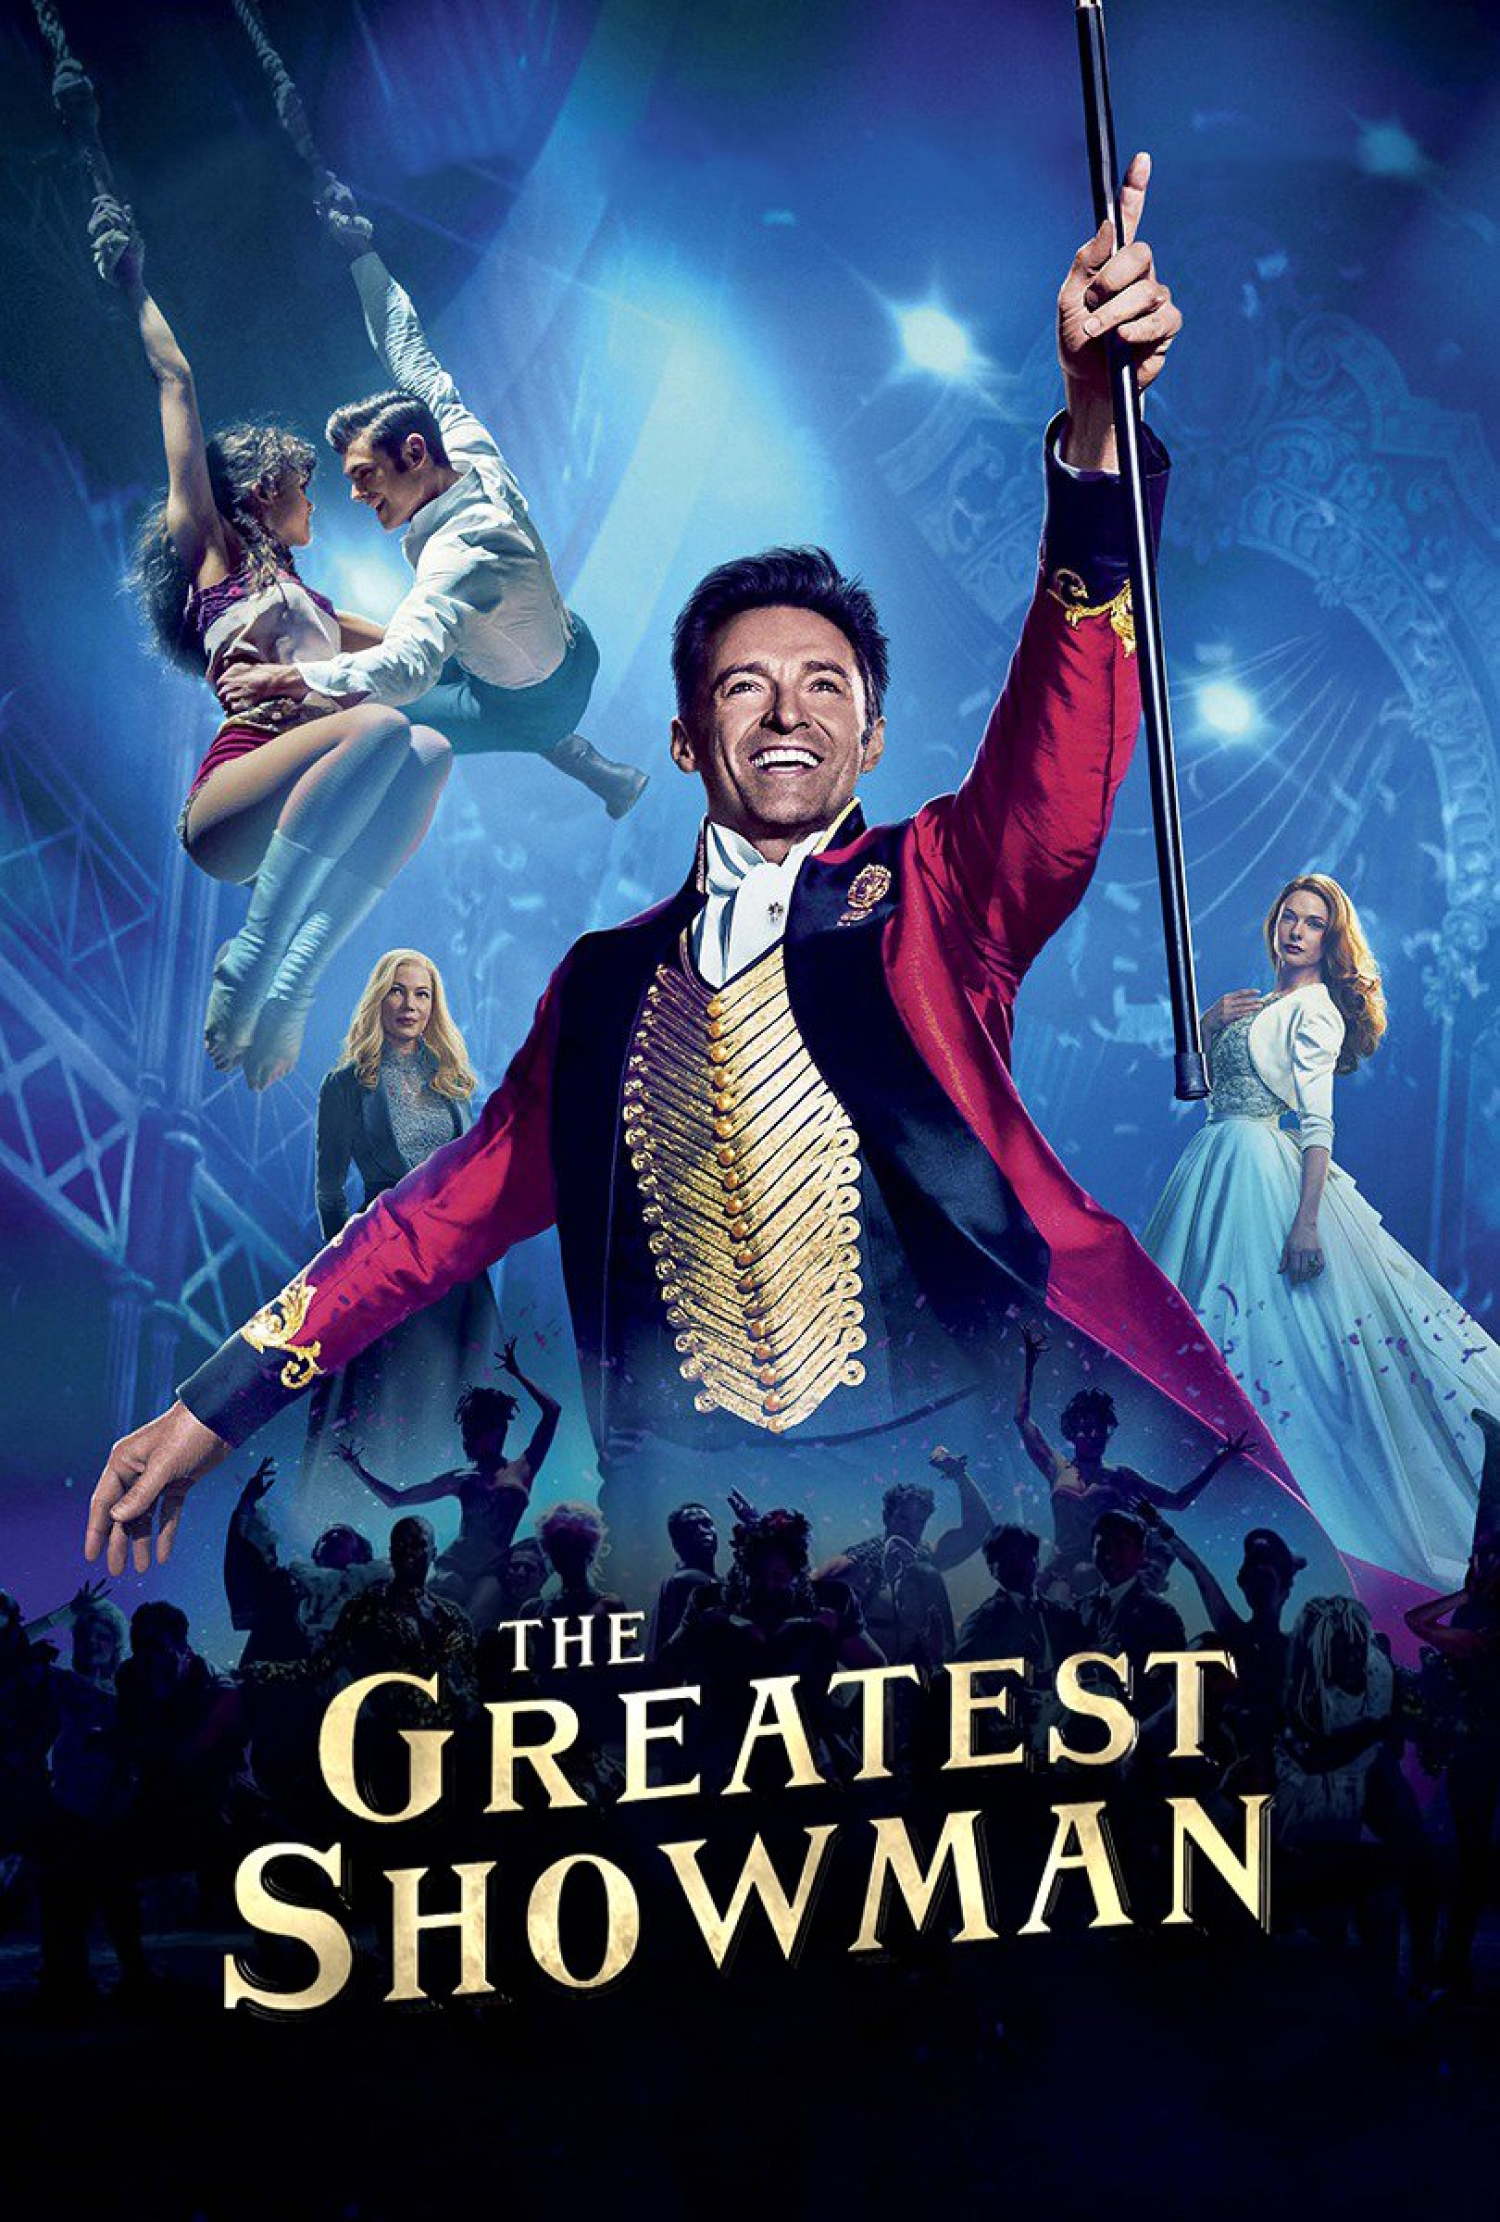 The Greatest Showman : a spectacular and colorful show.5 min de lecture